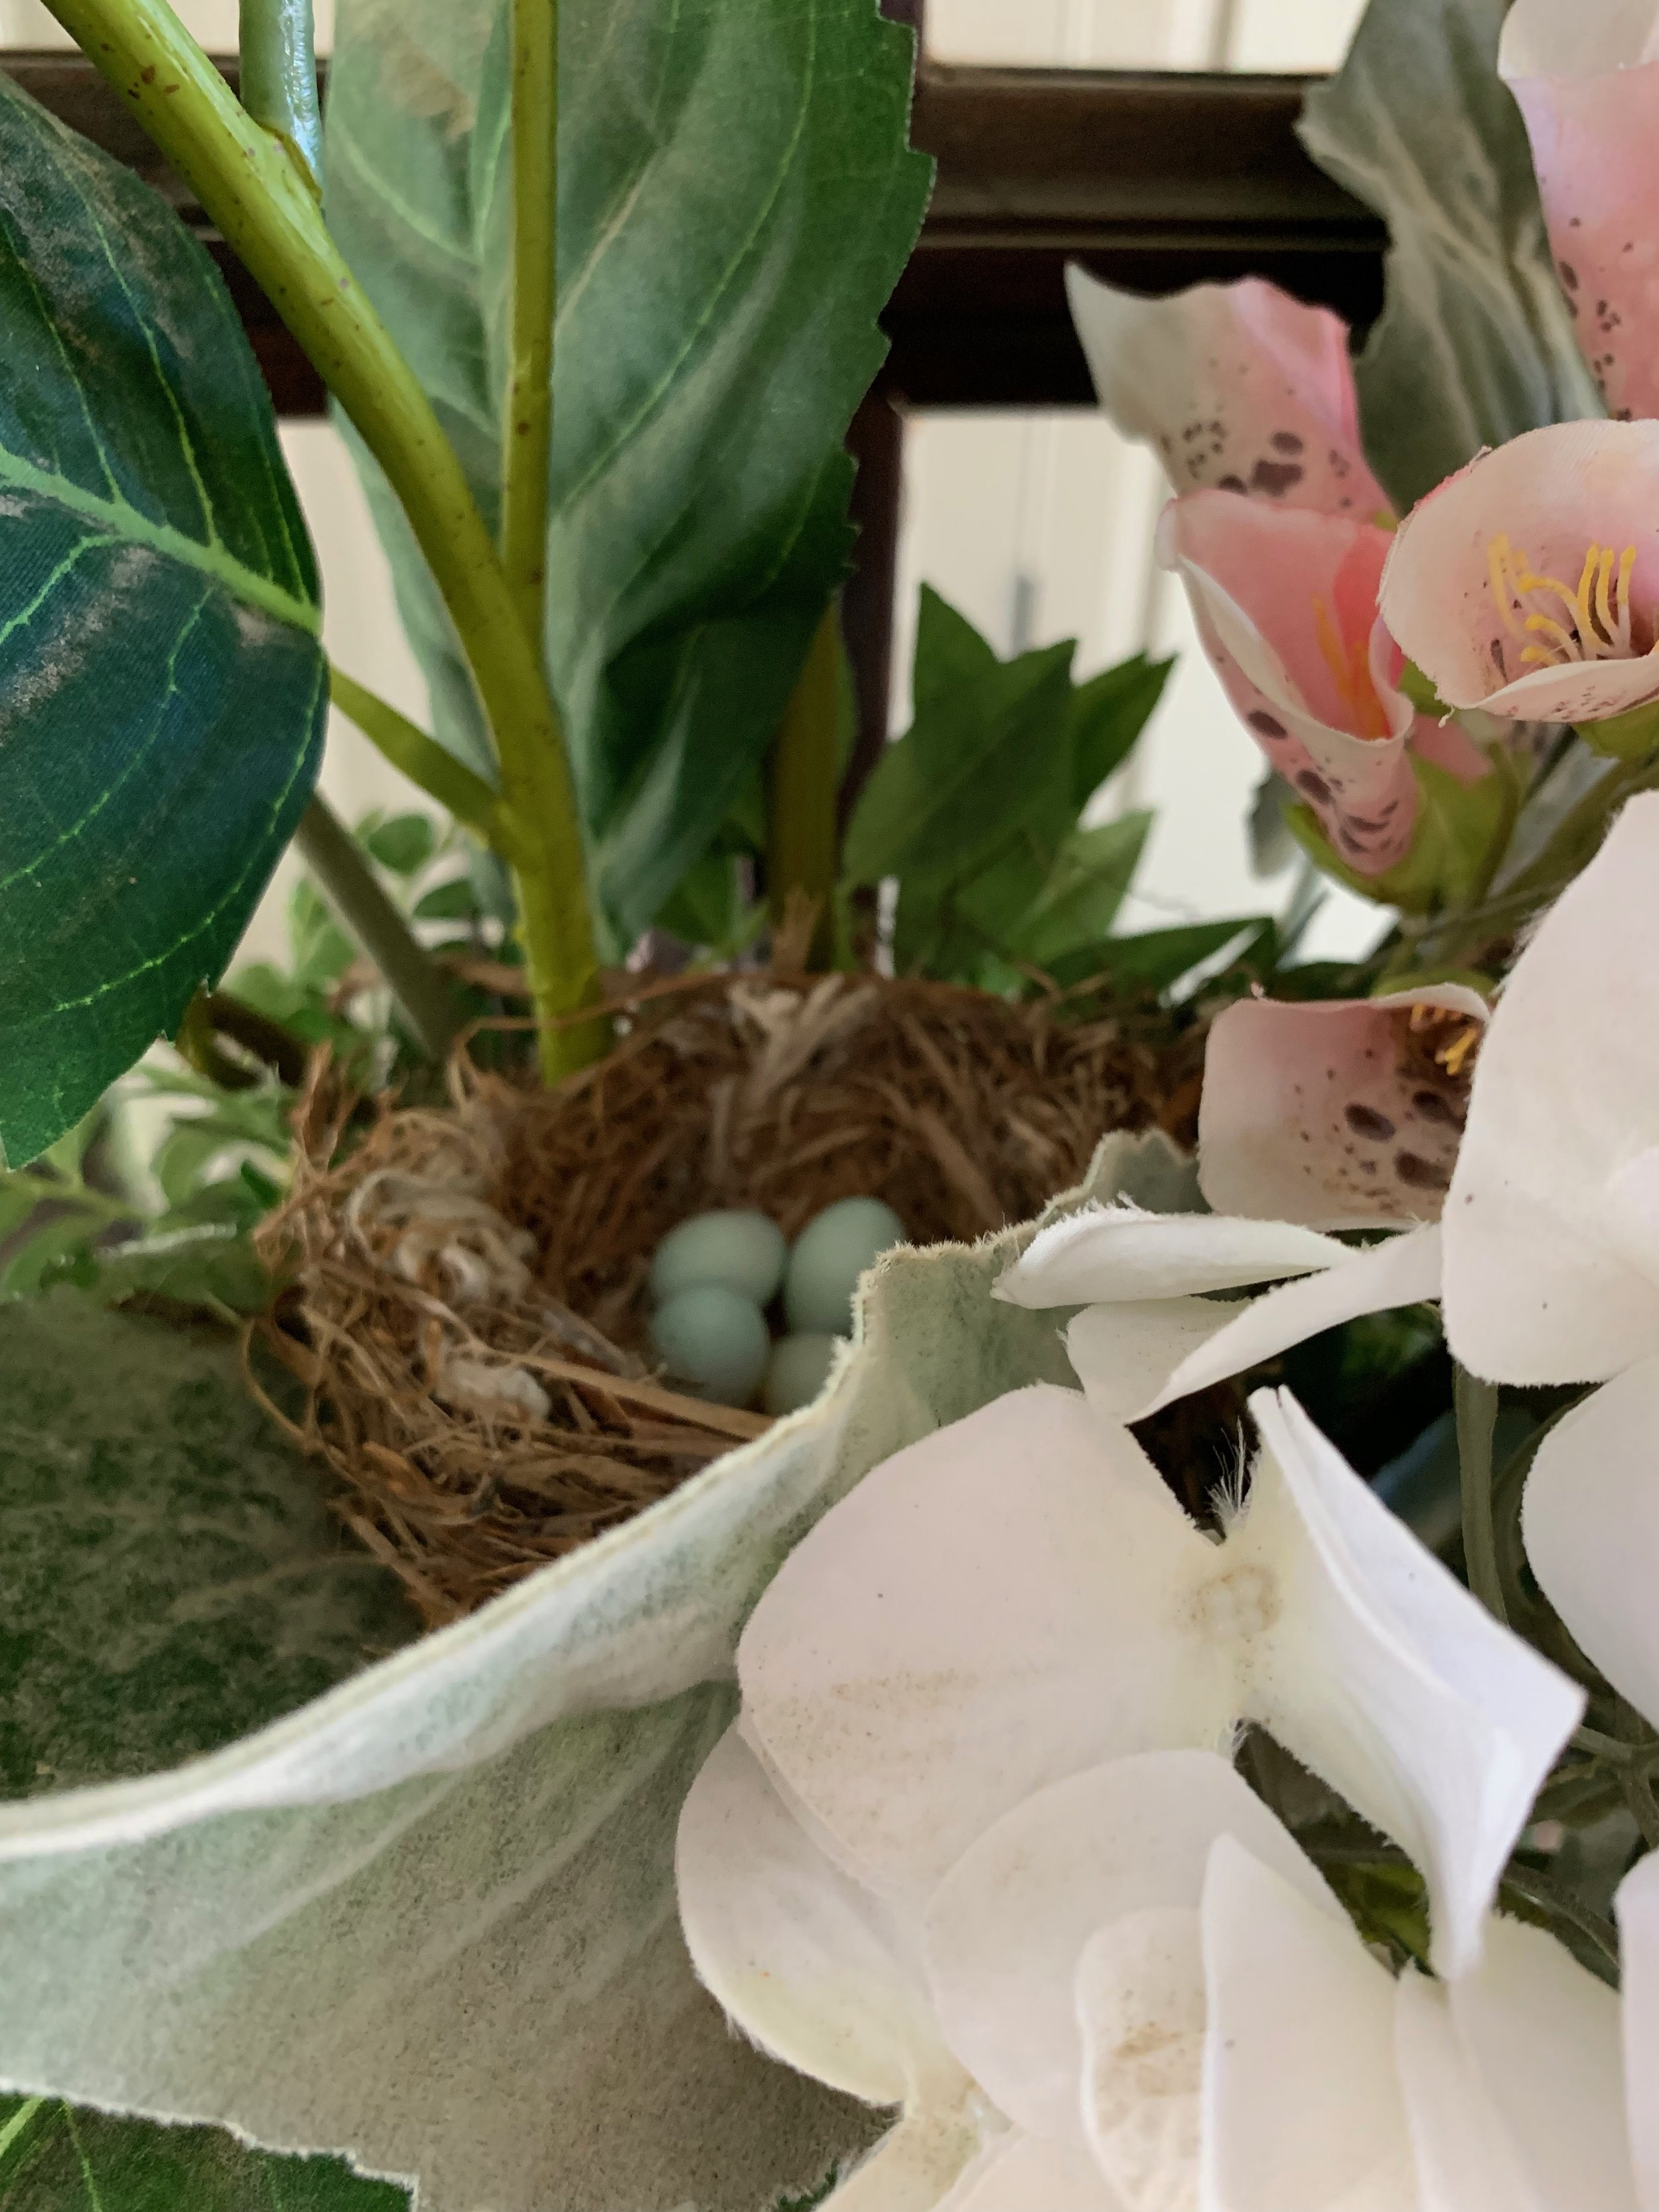 The nest behind the flowers